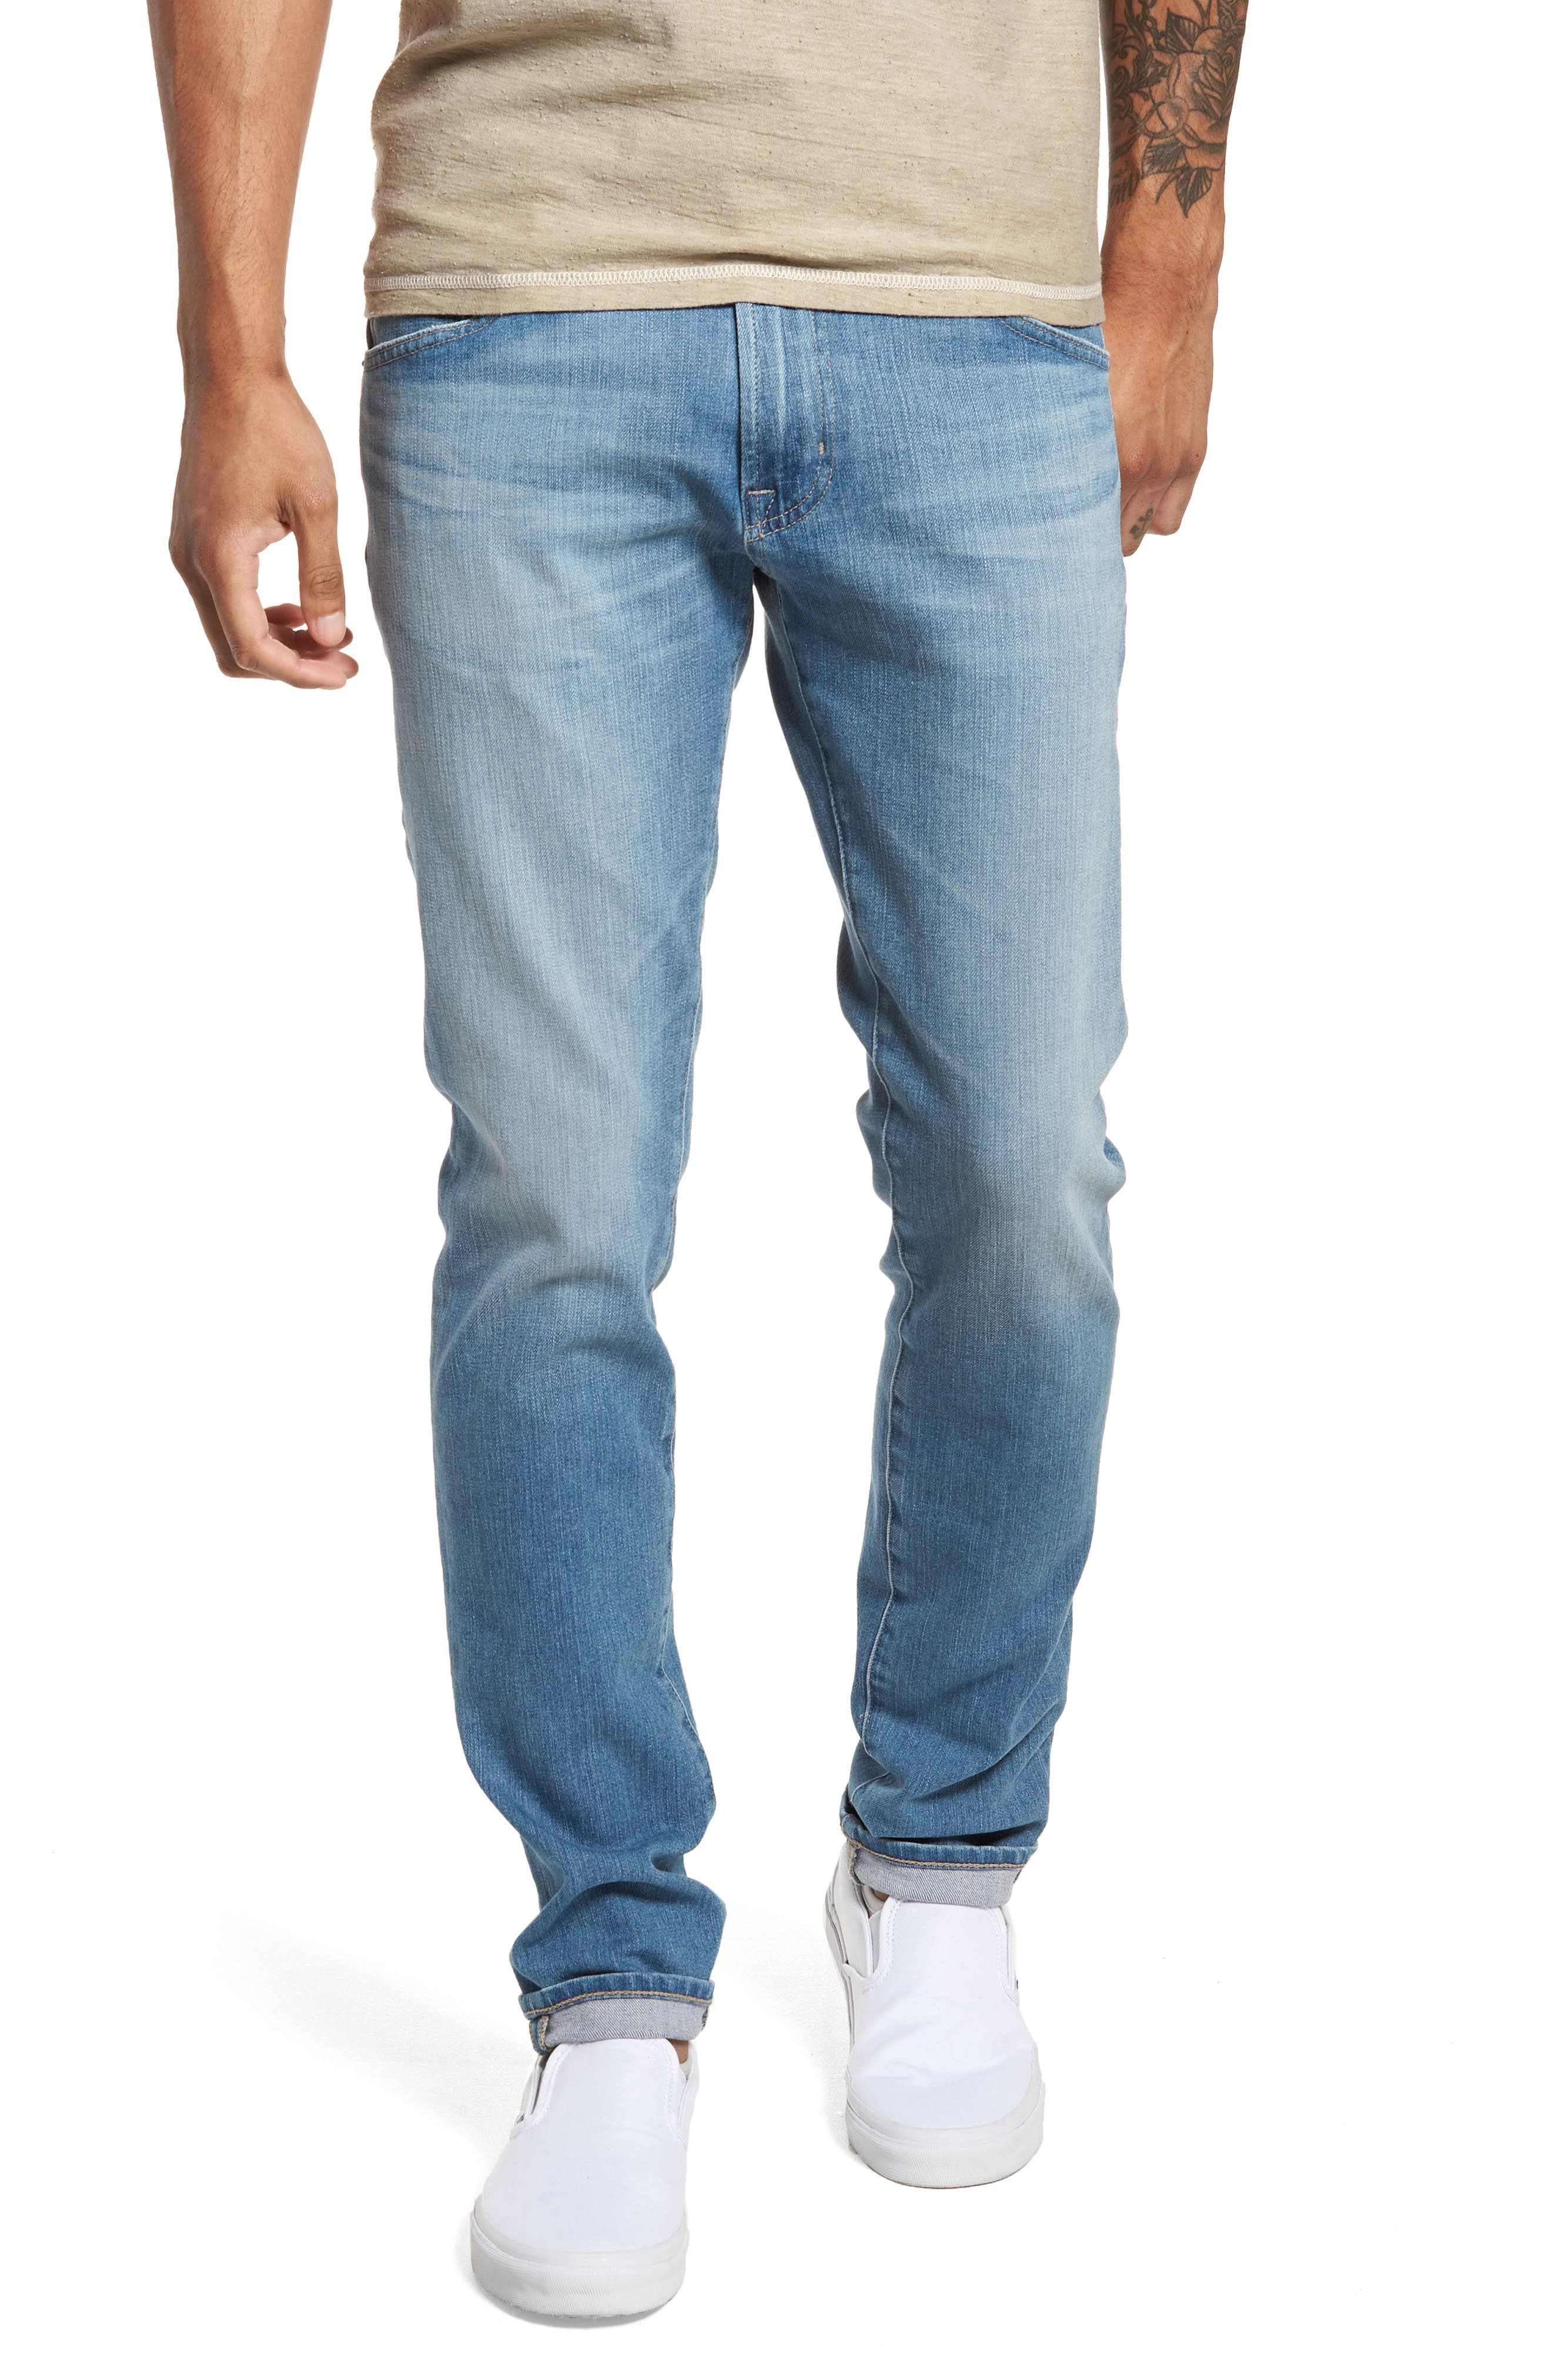 Dylan Skinny Fit Jeans,                             Main thumbnail 1, color,                             498